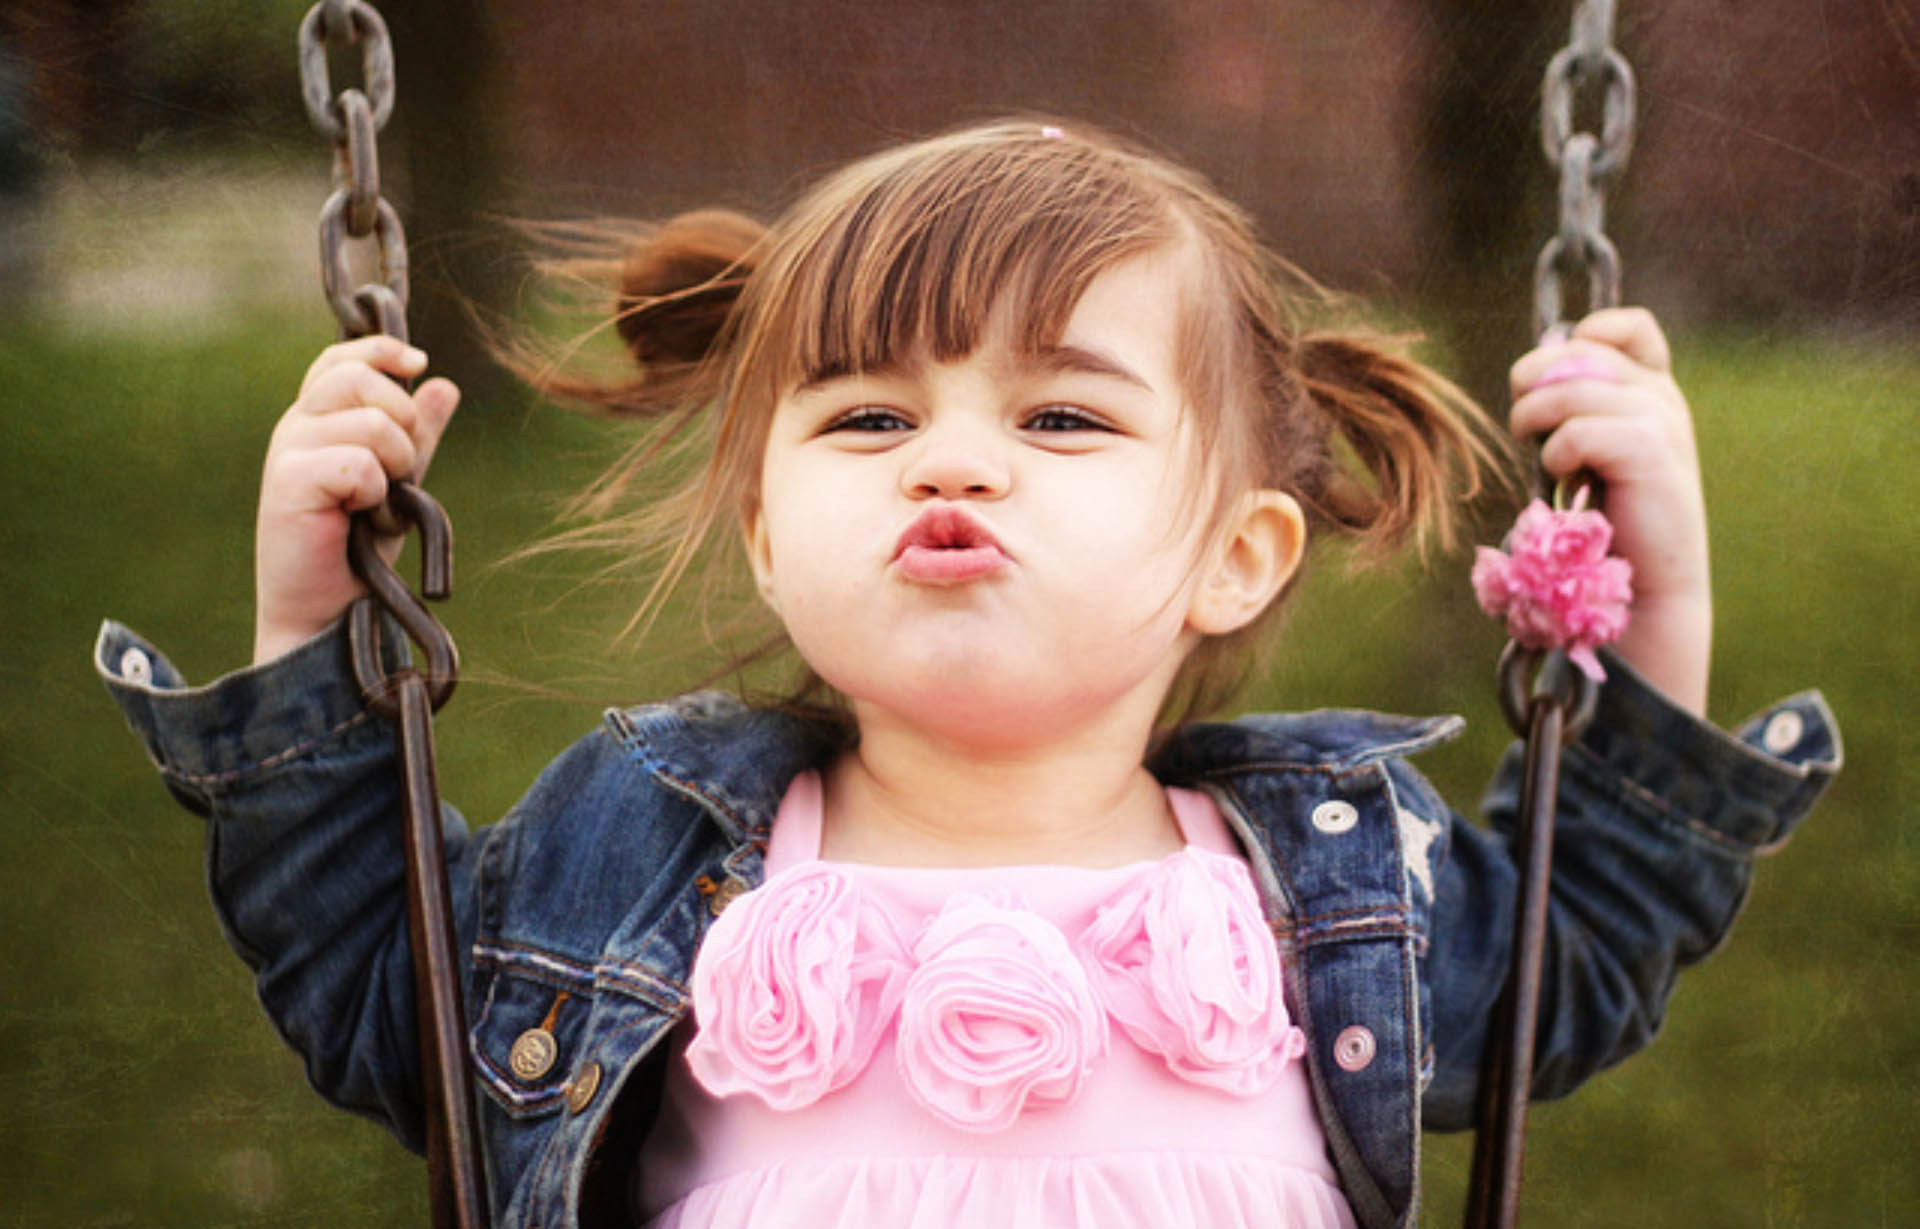 cute baby kiss couple wallpapers at hdwallpapersz cute kiss htc p